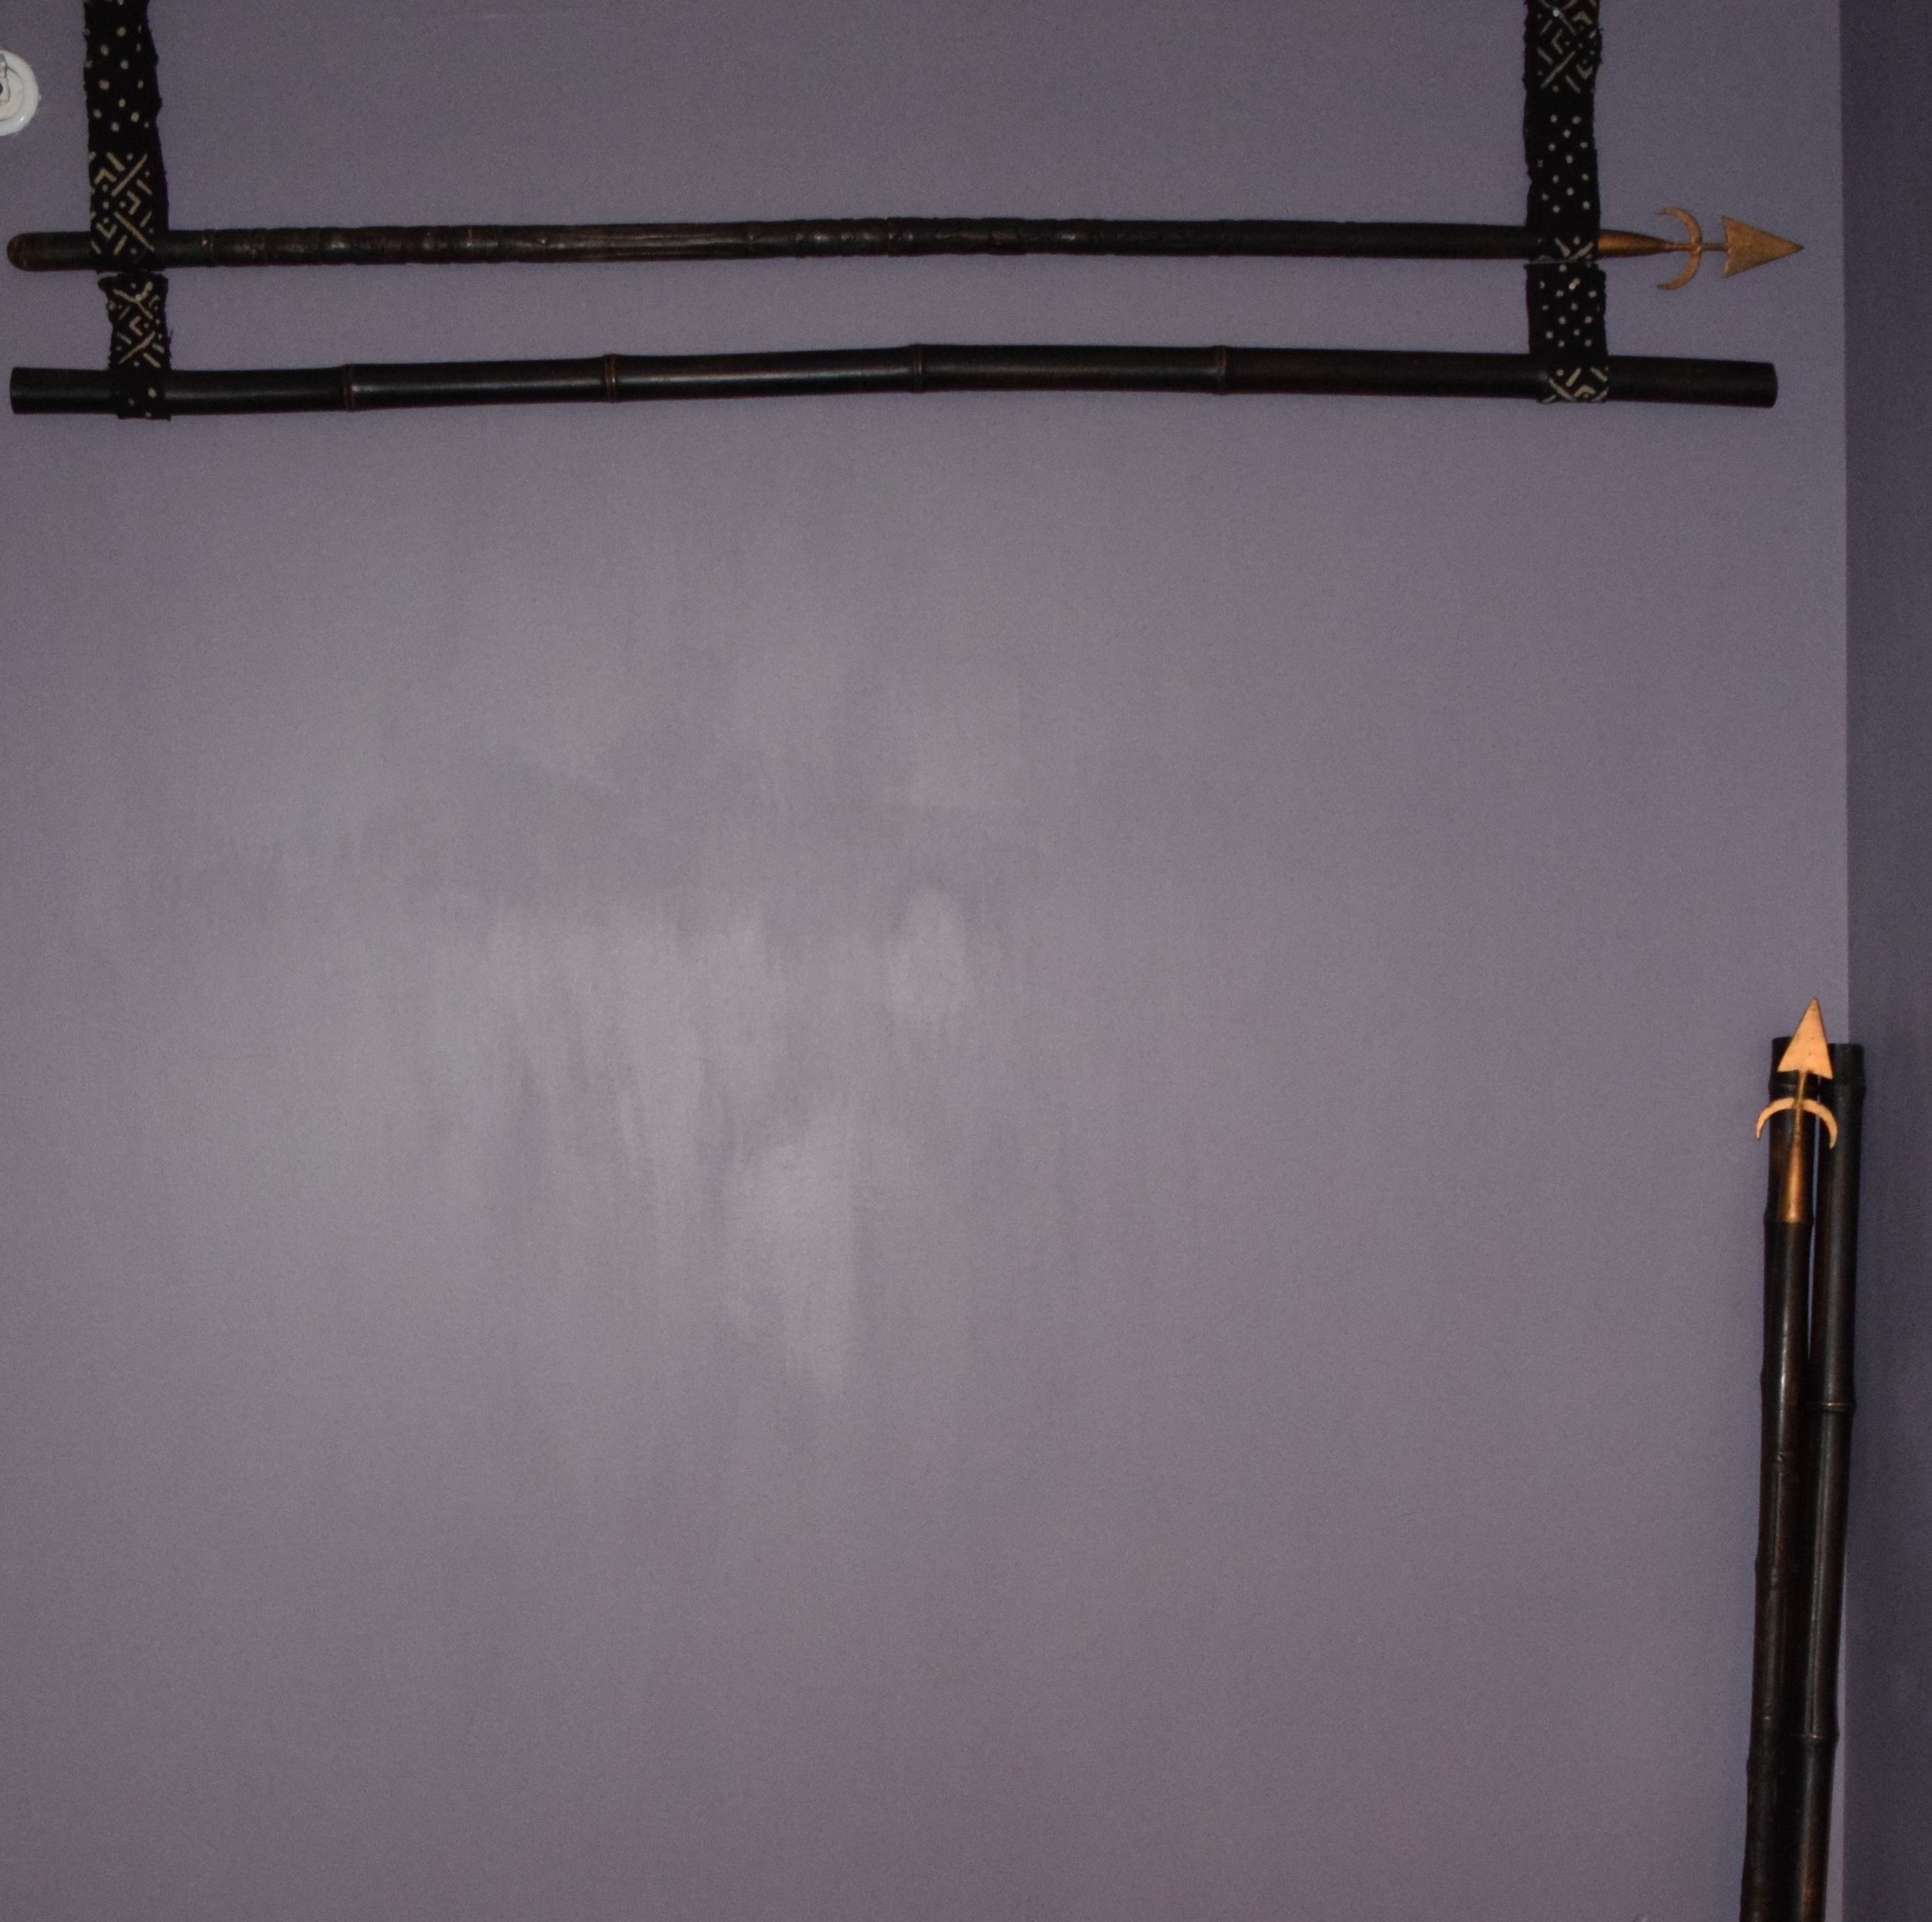 I paired them with bamboo to see if I liked them in a group... Nope, these spears needed to be by themselves. (And the wall needed another coat of paint.)